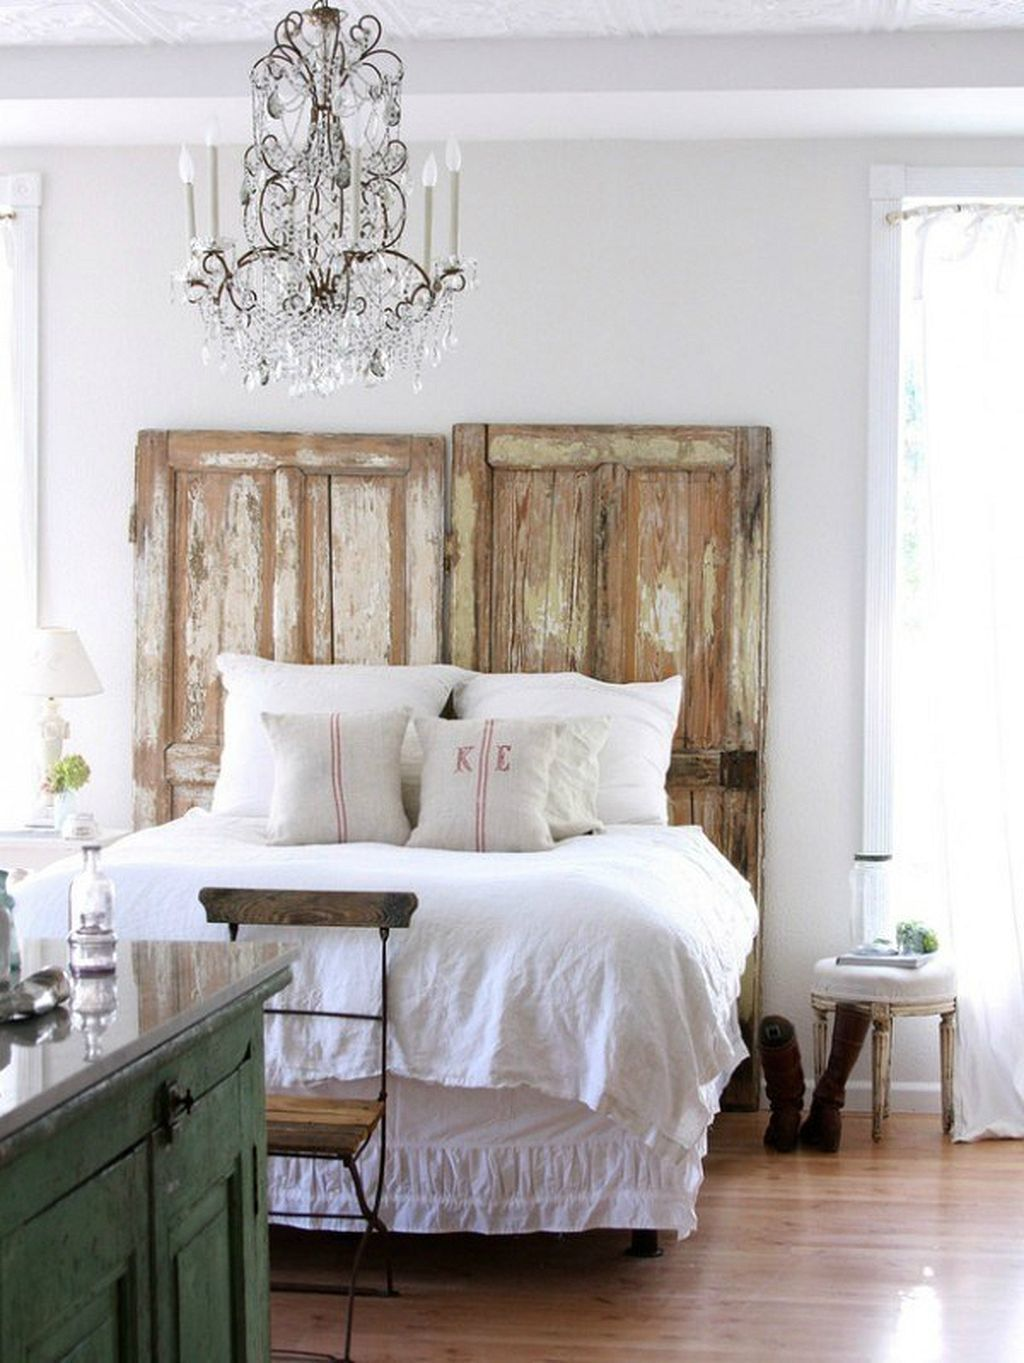 Pin by vintage shabby rustic on farmhouse chic unique in